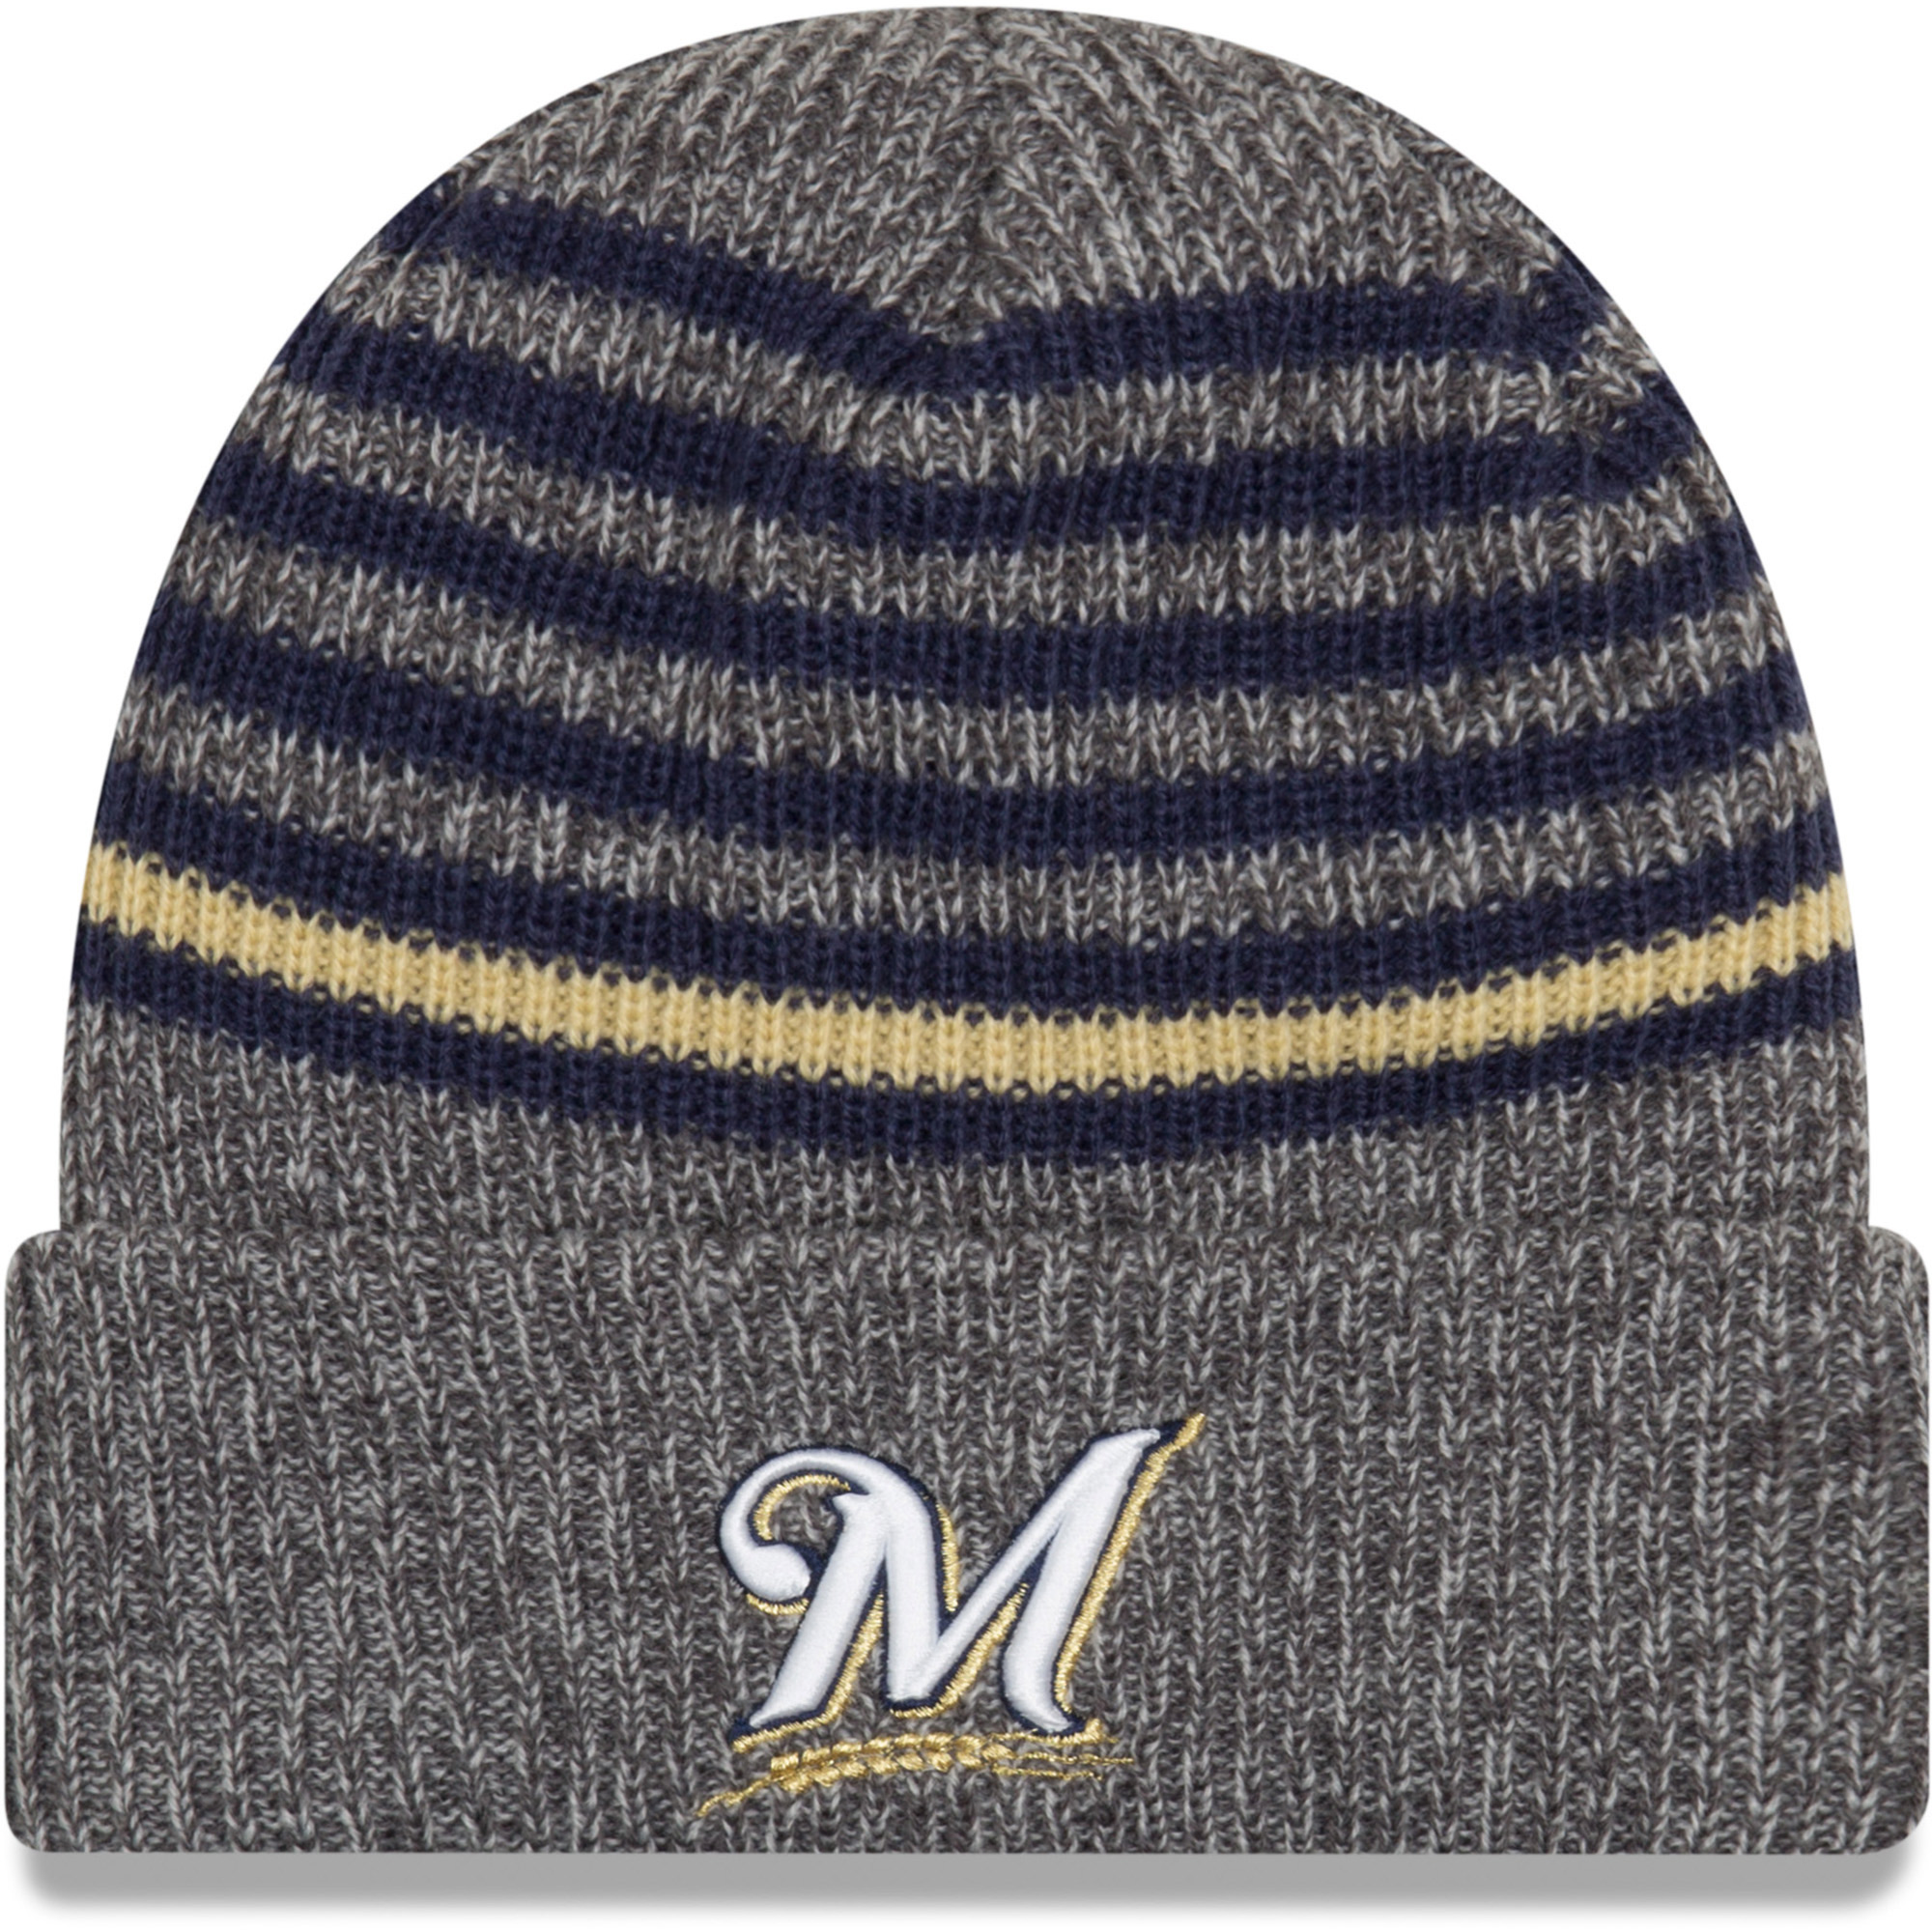 reputable site d6457 dbc36 ... best price milwaukee brewers new era stripe strong cuffed knit hat gray  osfa 88810 1dc47